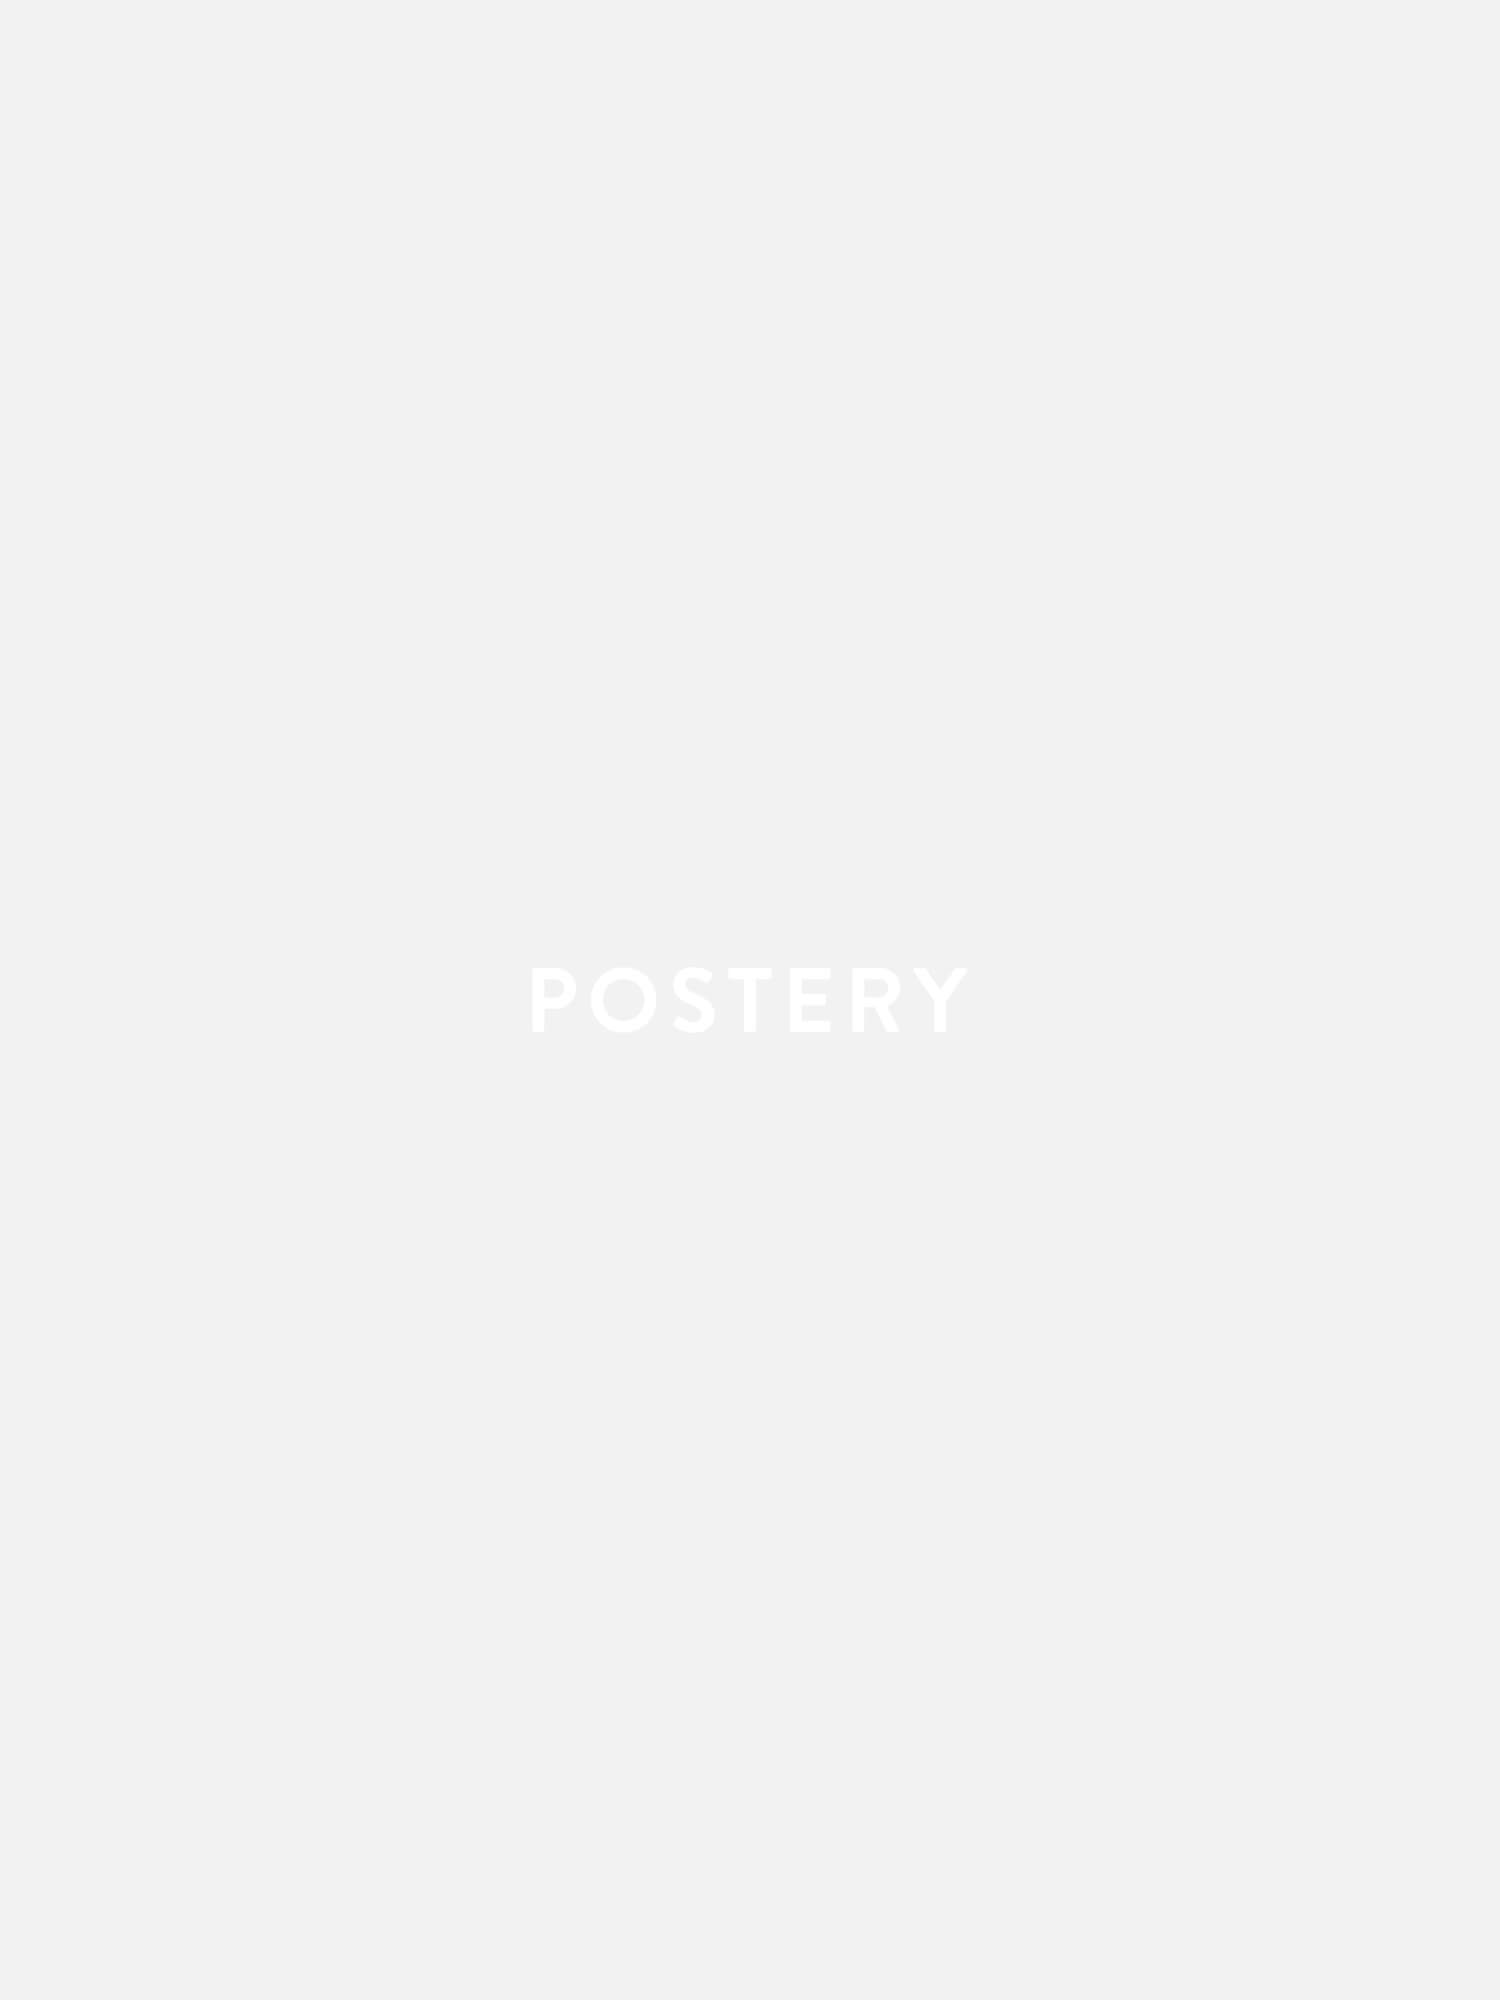 Abstraction no.2 Poster